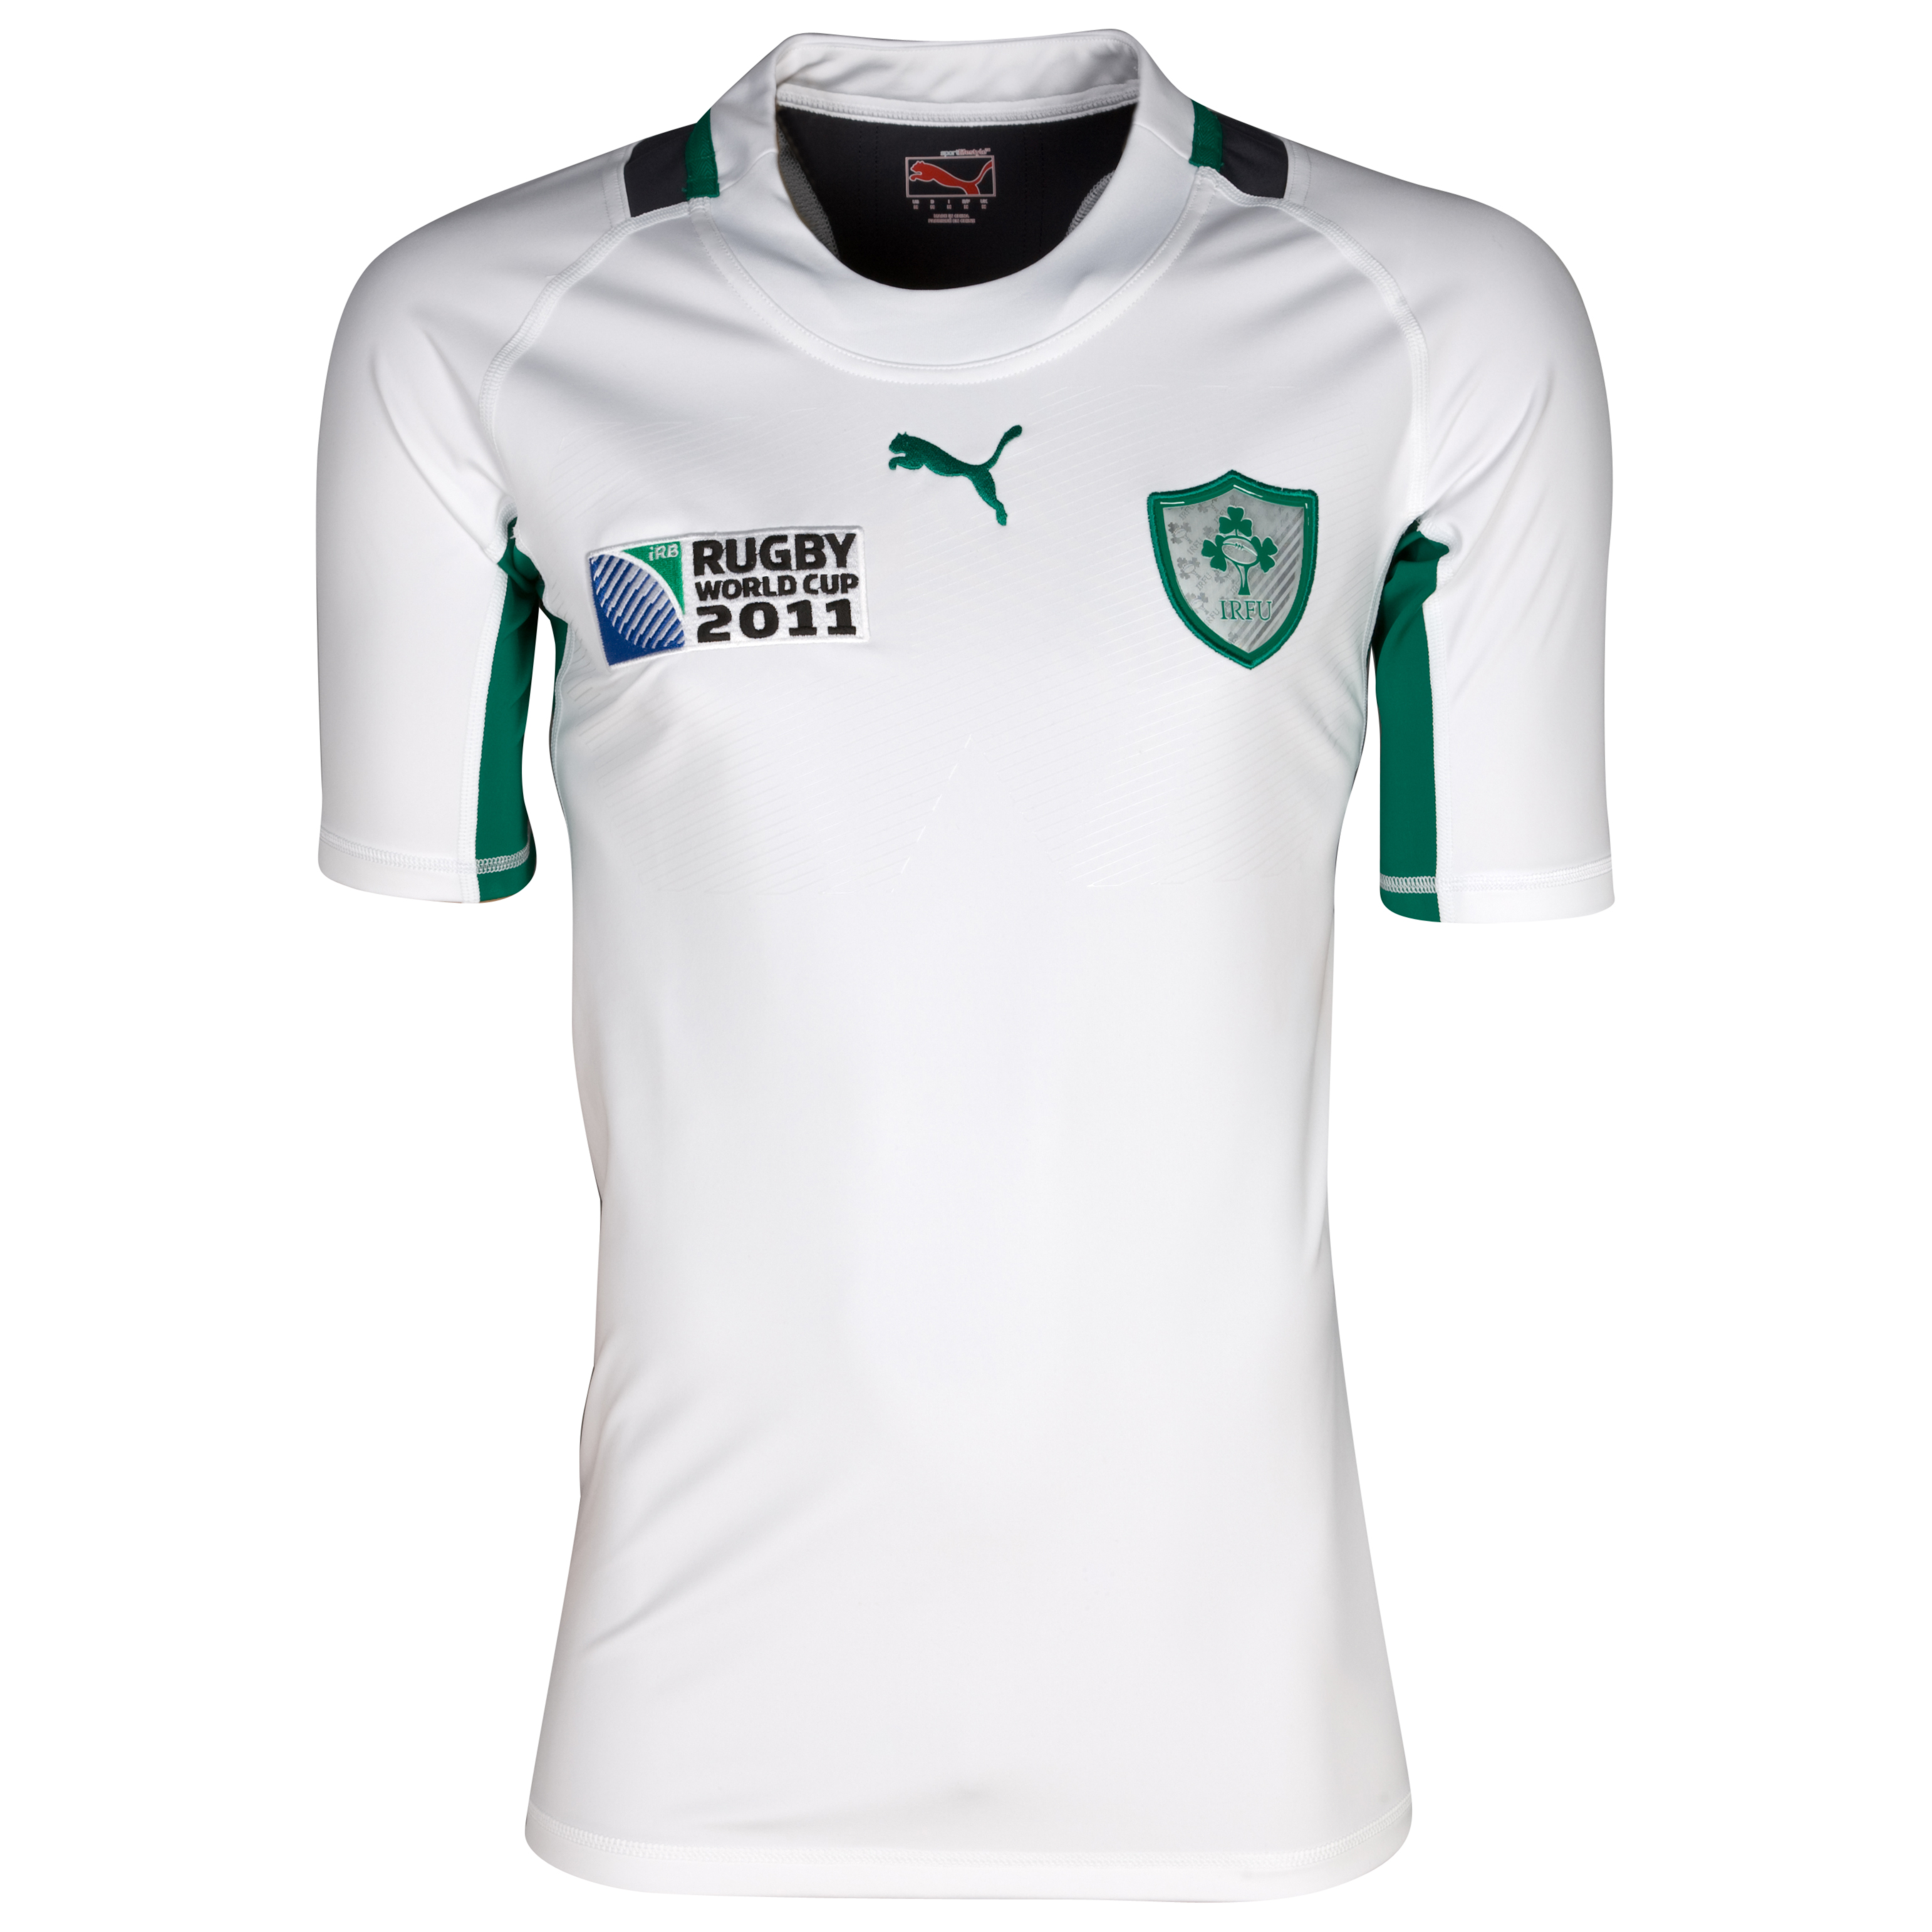 Ireland Rugby World Cup Authentic Alternative Shirt 2011/12 - White/Ebony. for 25€